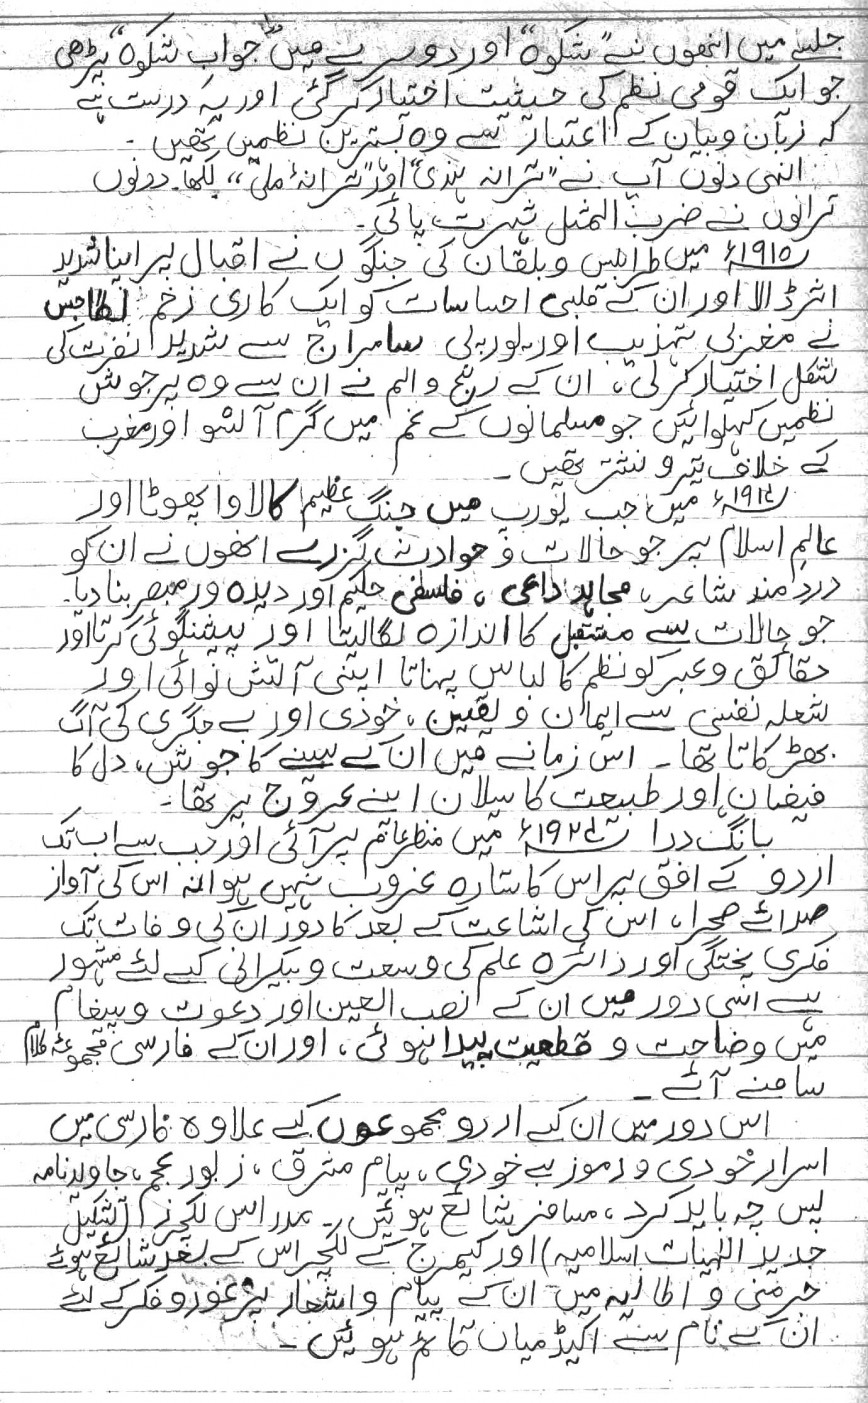 004 Urdu Essay Allama Iqbal Example Dreaded On In For Class 10 With Poetry Ka Shaheen Headings And 868